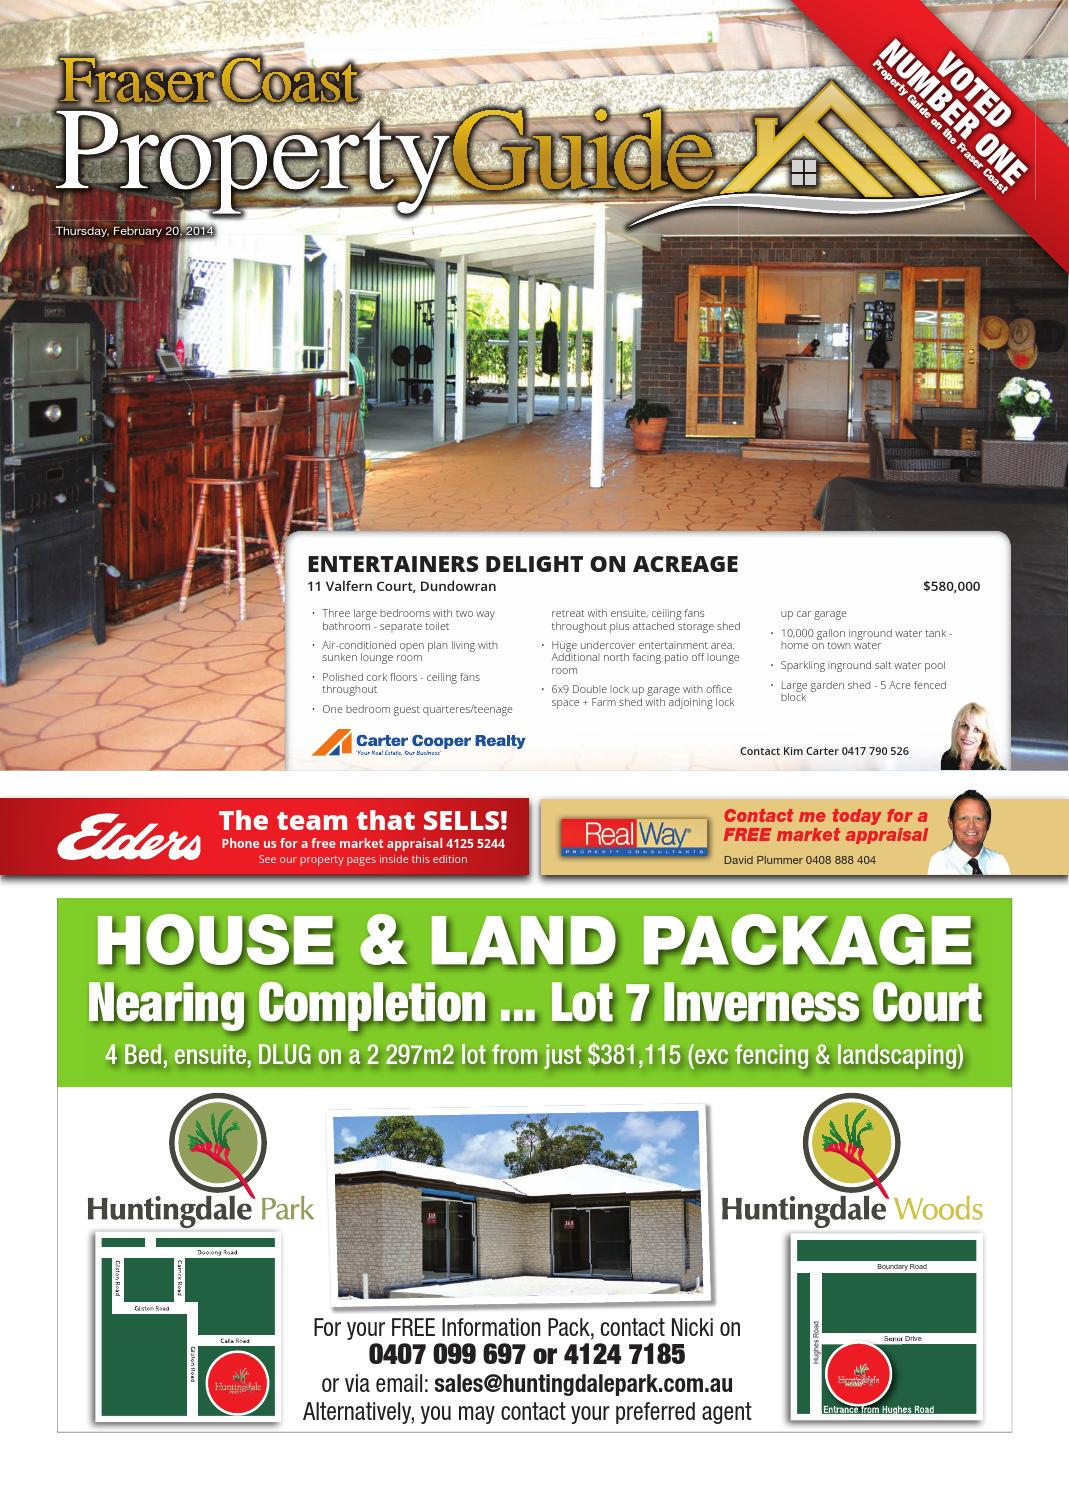 Fraser Coast Property Guide 20 February 2014 By Hervey Bay Independent